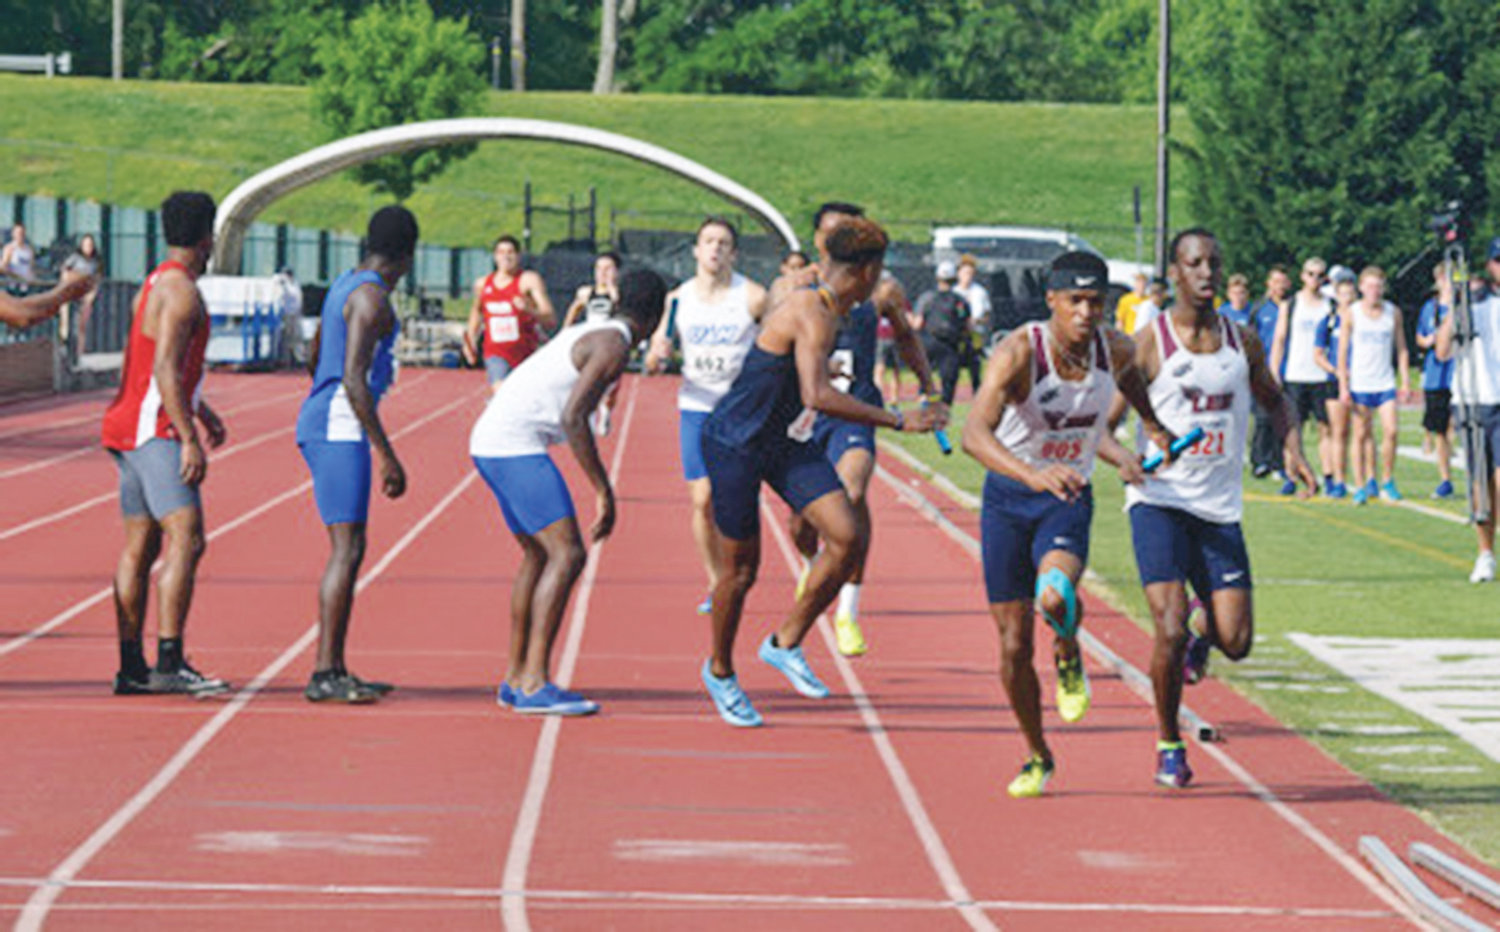 LEE UNIVERSITY'S Siphosethu Boya (left) receives the baton from Jeremiah McCain to begin the third leg of the 4x400-meter relay at the recent Gulf South Conference Championships.